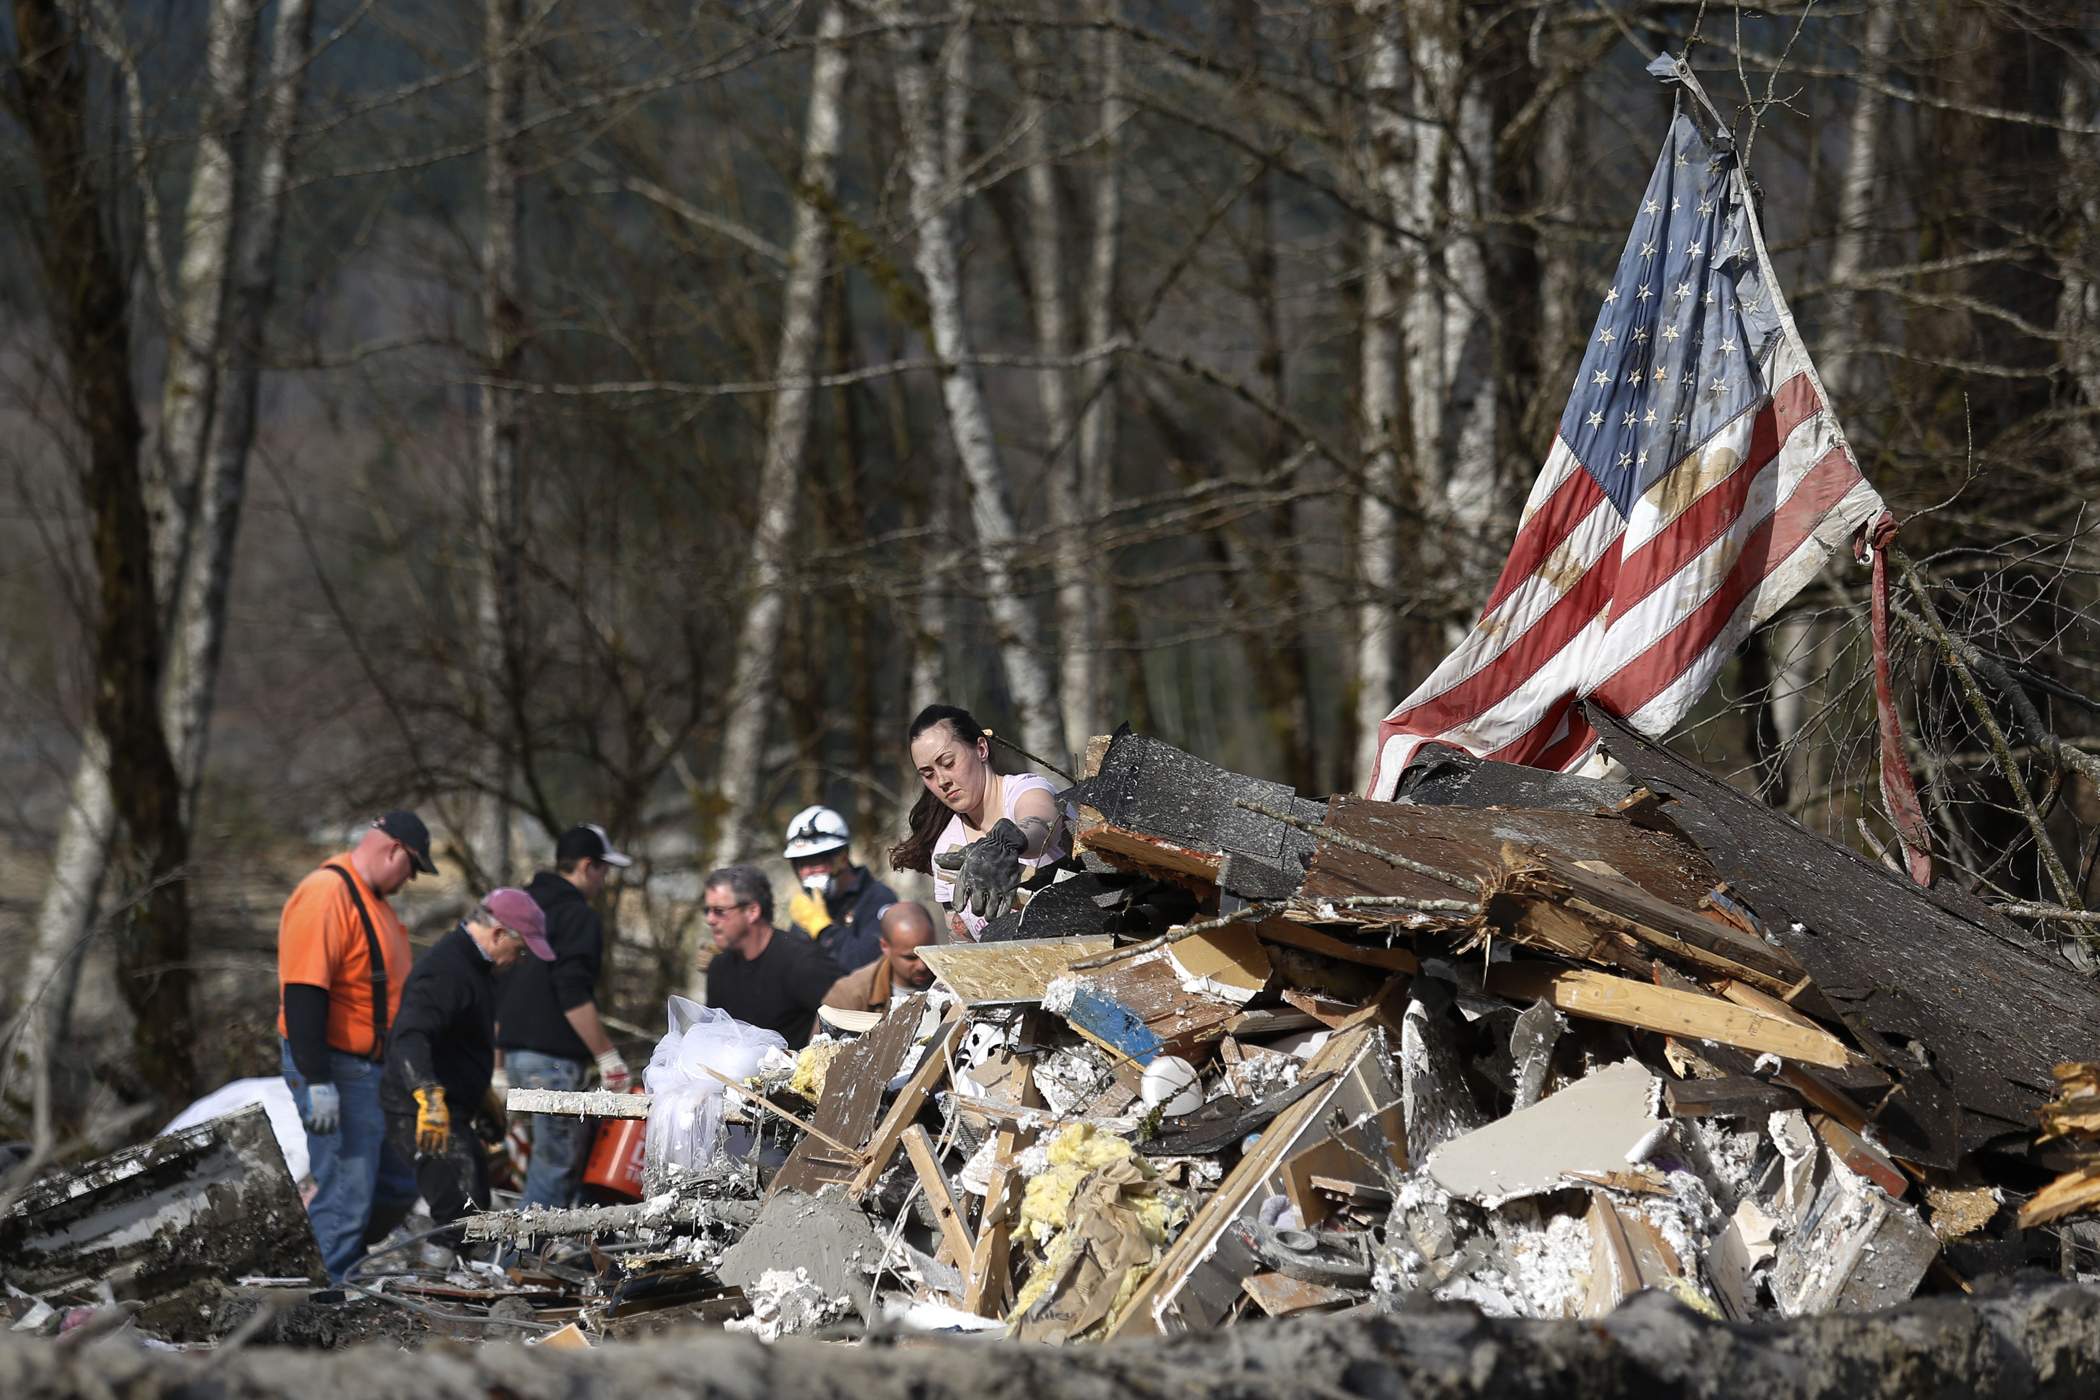 A large number of volunteers turned out Monday March 24, 2014, wanting to help with the search in Oso, Washington.